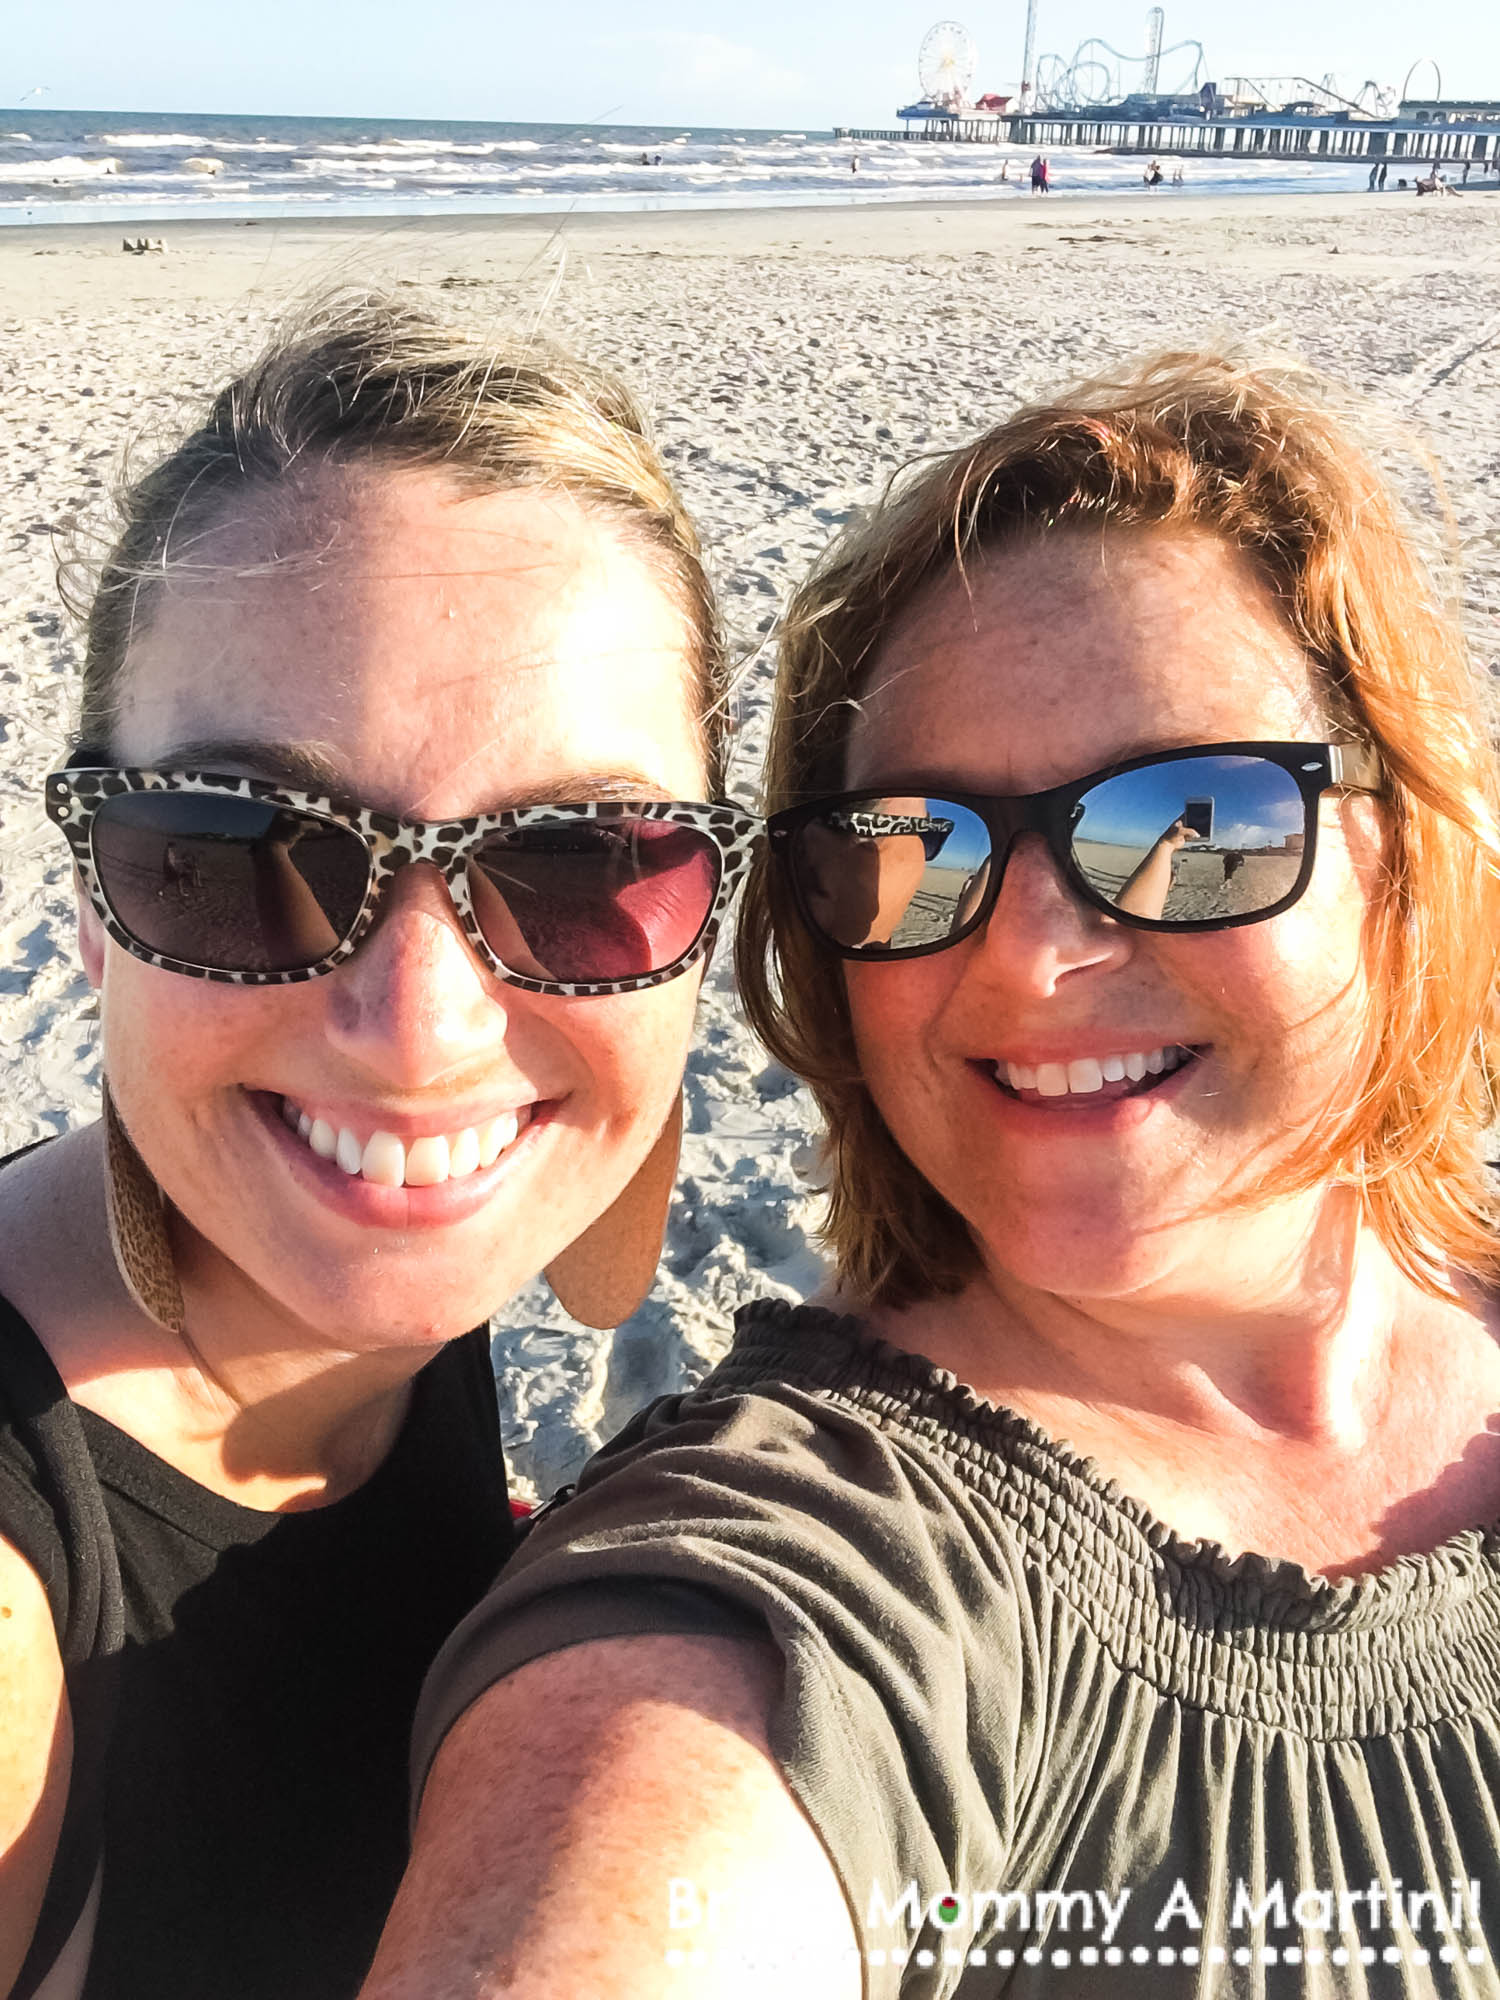 My sis-in-law and me doing a beach selfie